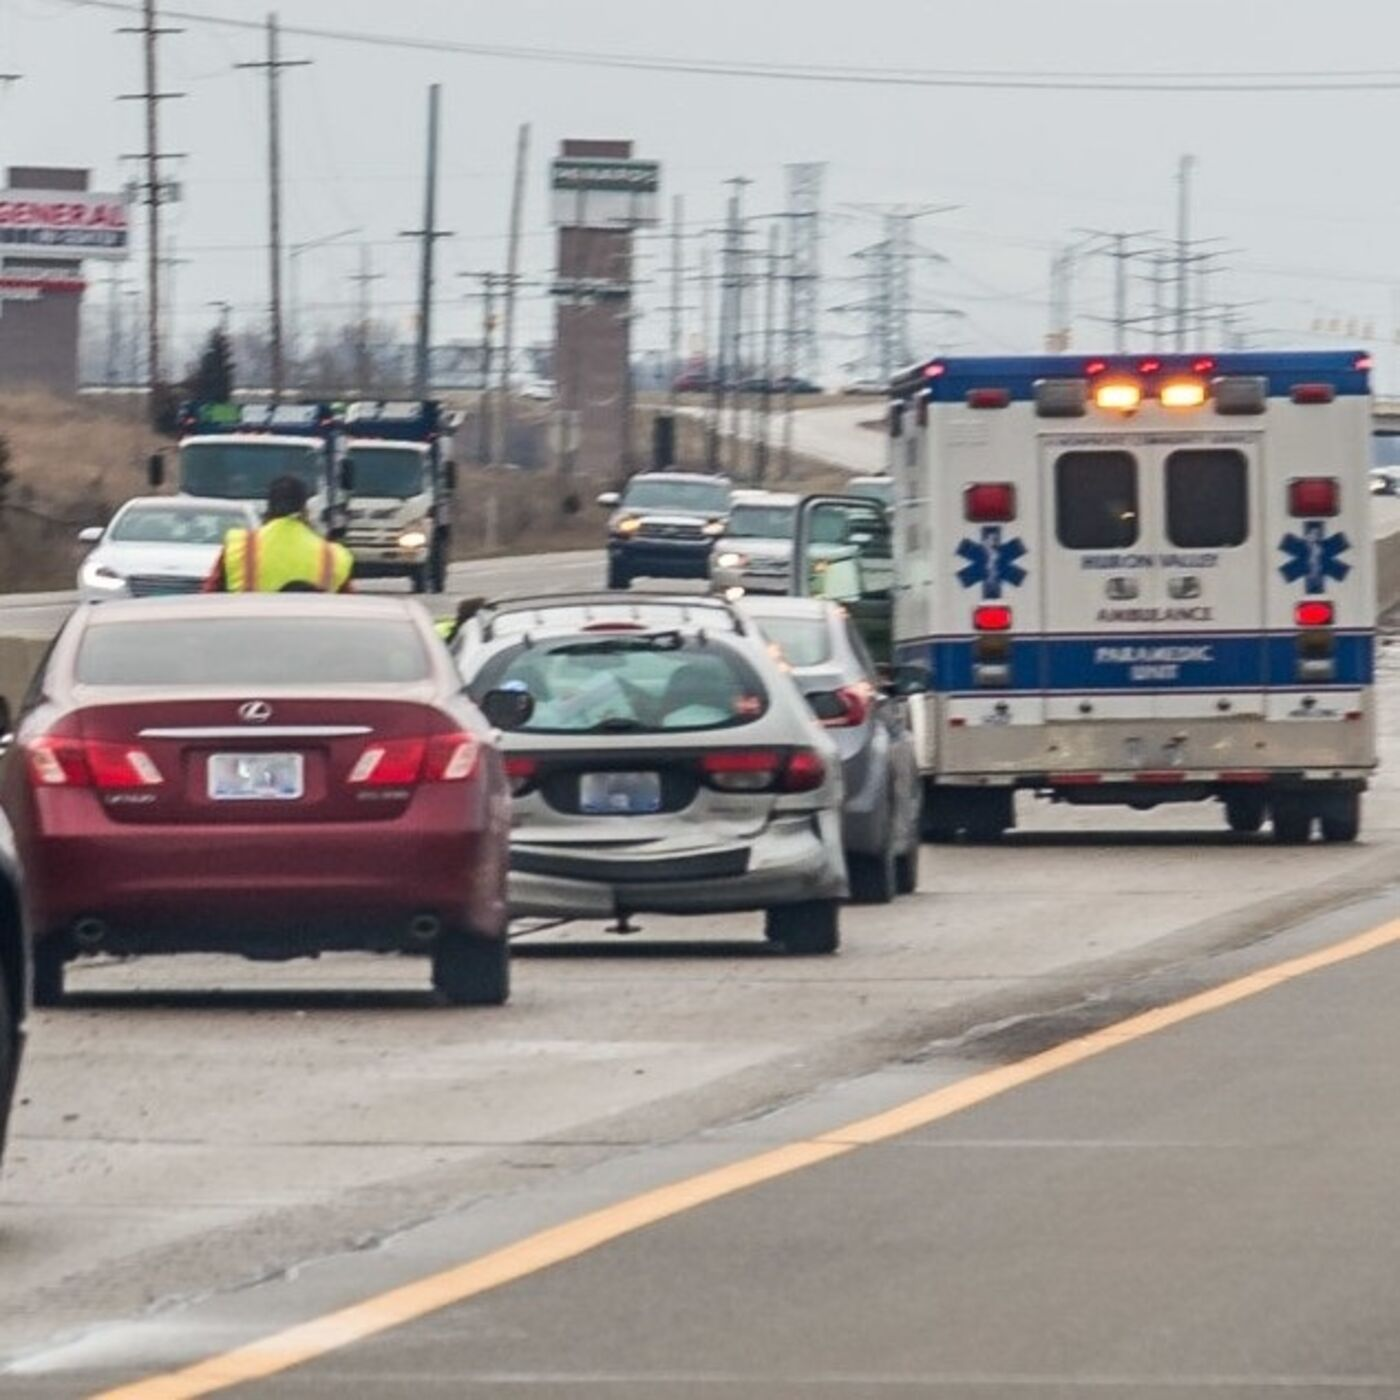 Police see dramatic rise in speeds, fatal crashes during pandemic